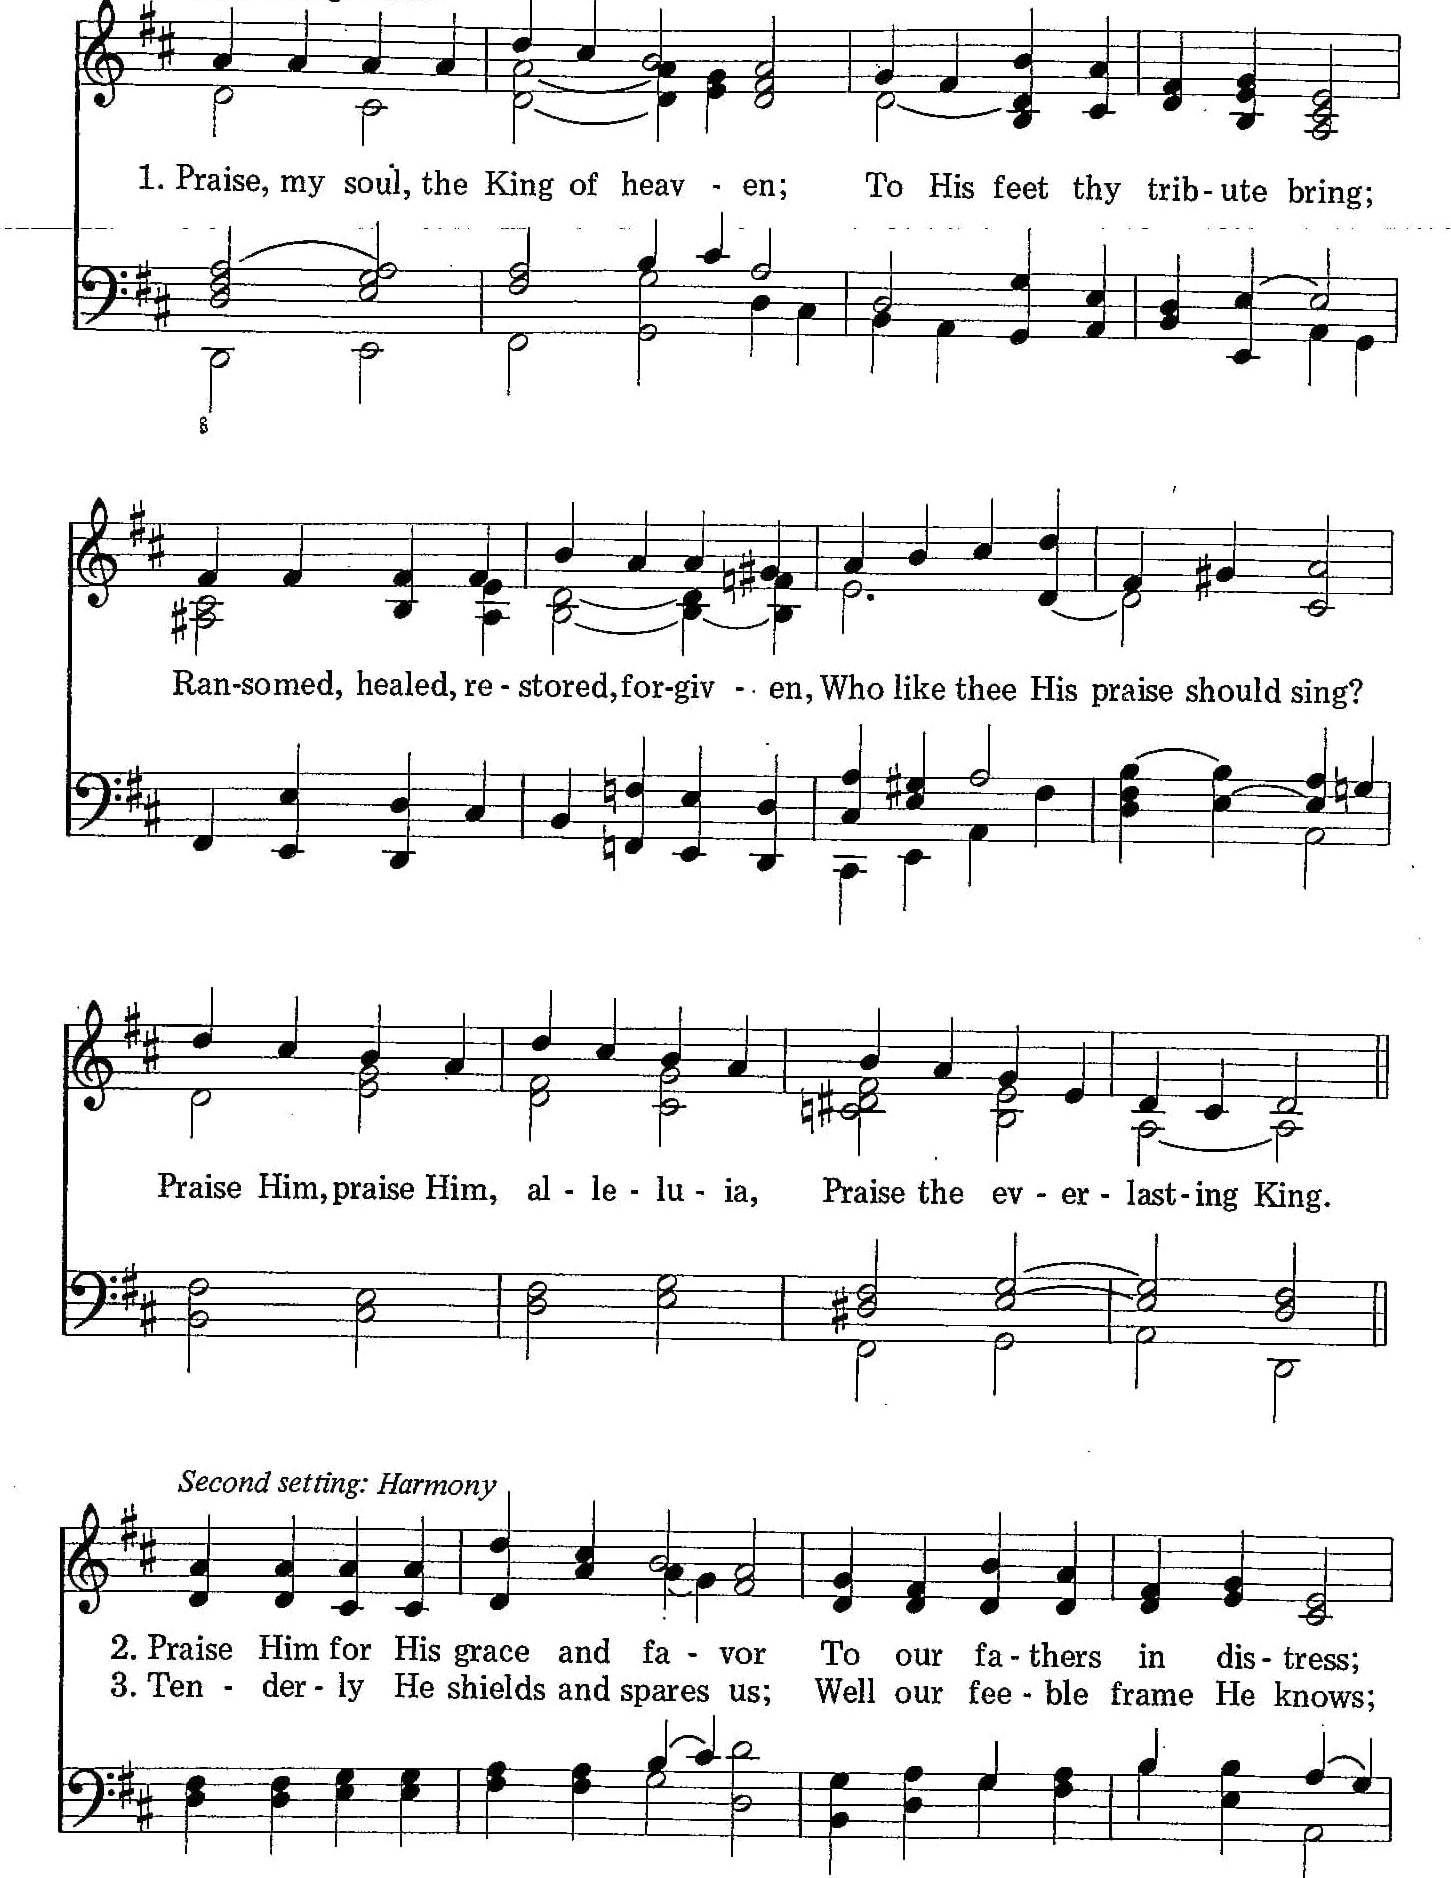 004 – Praise, My Soul, the King of Heaven sheet music